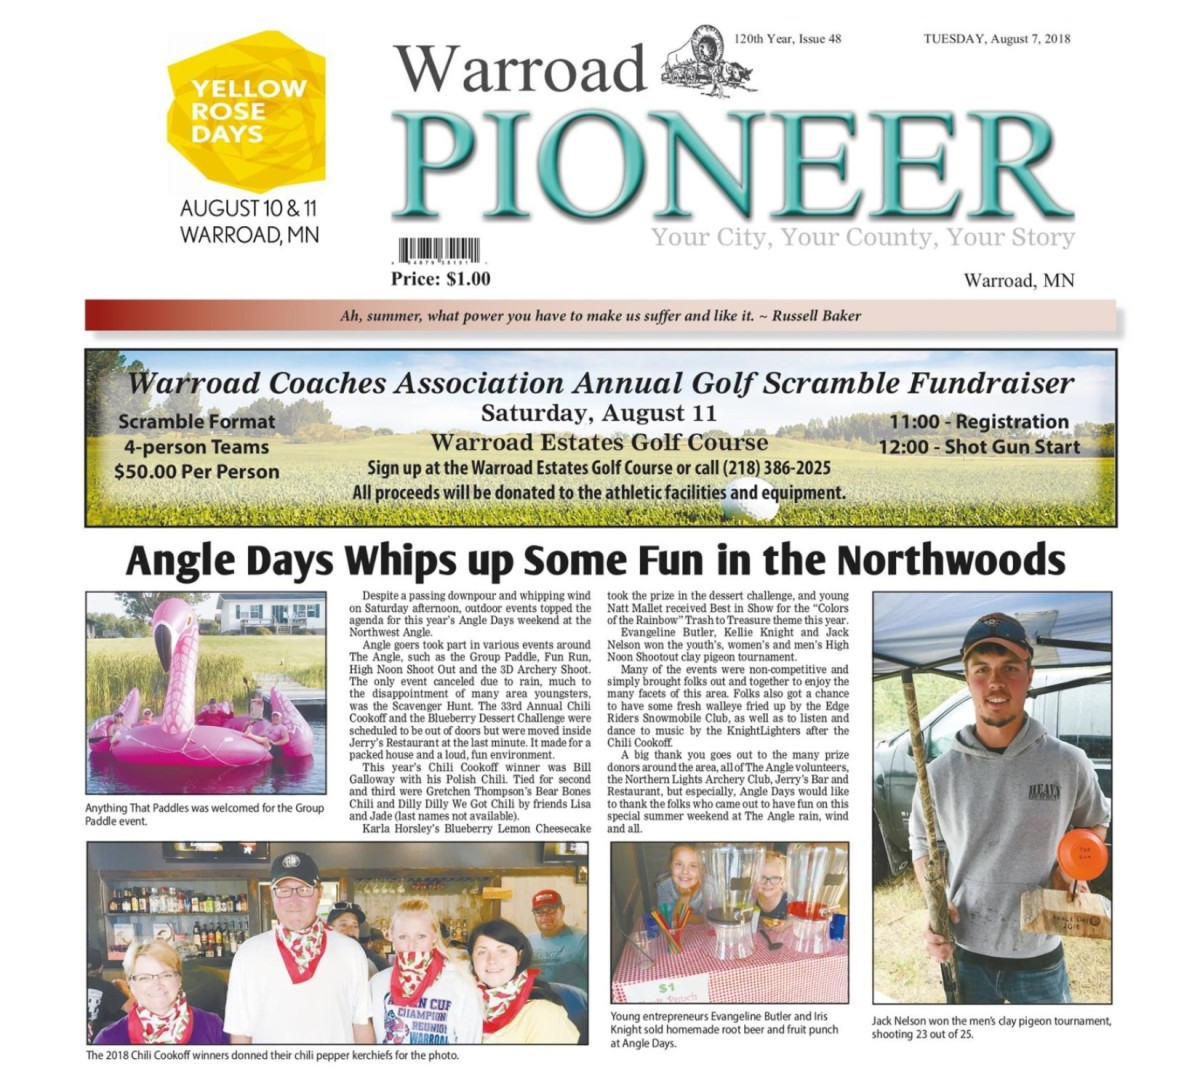 Angle Days Whips up Some Fun in theNorthwoods